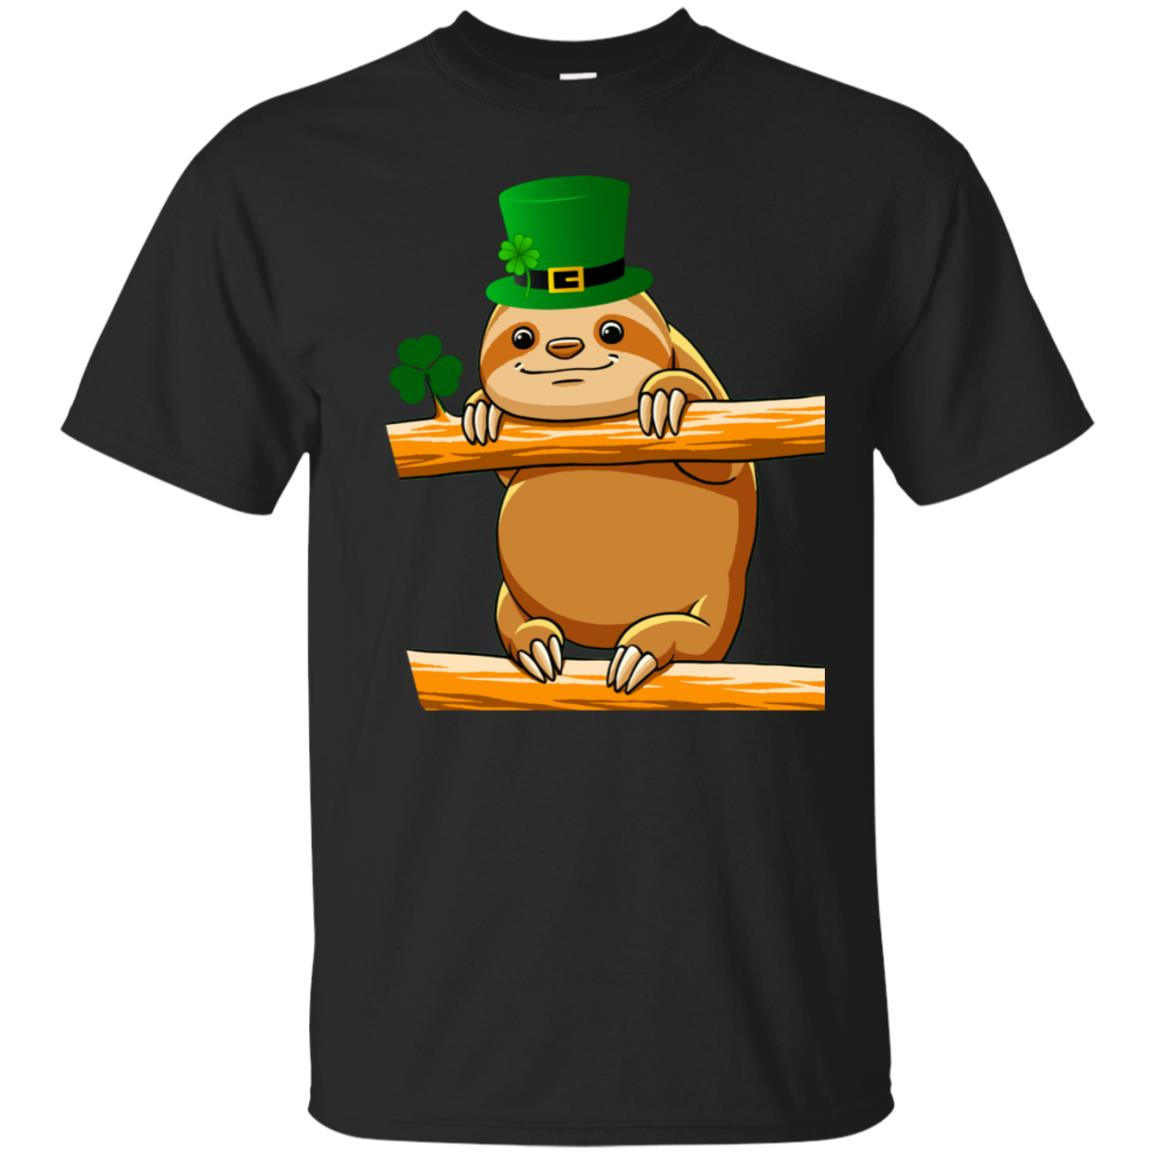 Cute Saint Patrick's Sloth T Shirt for Sloths Lovers 99promocode